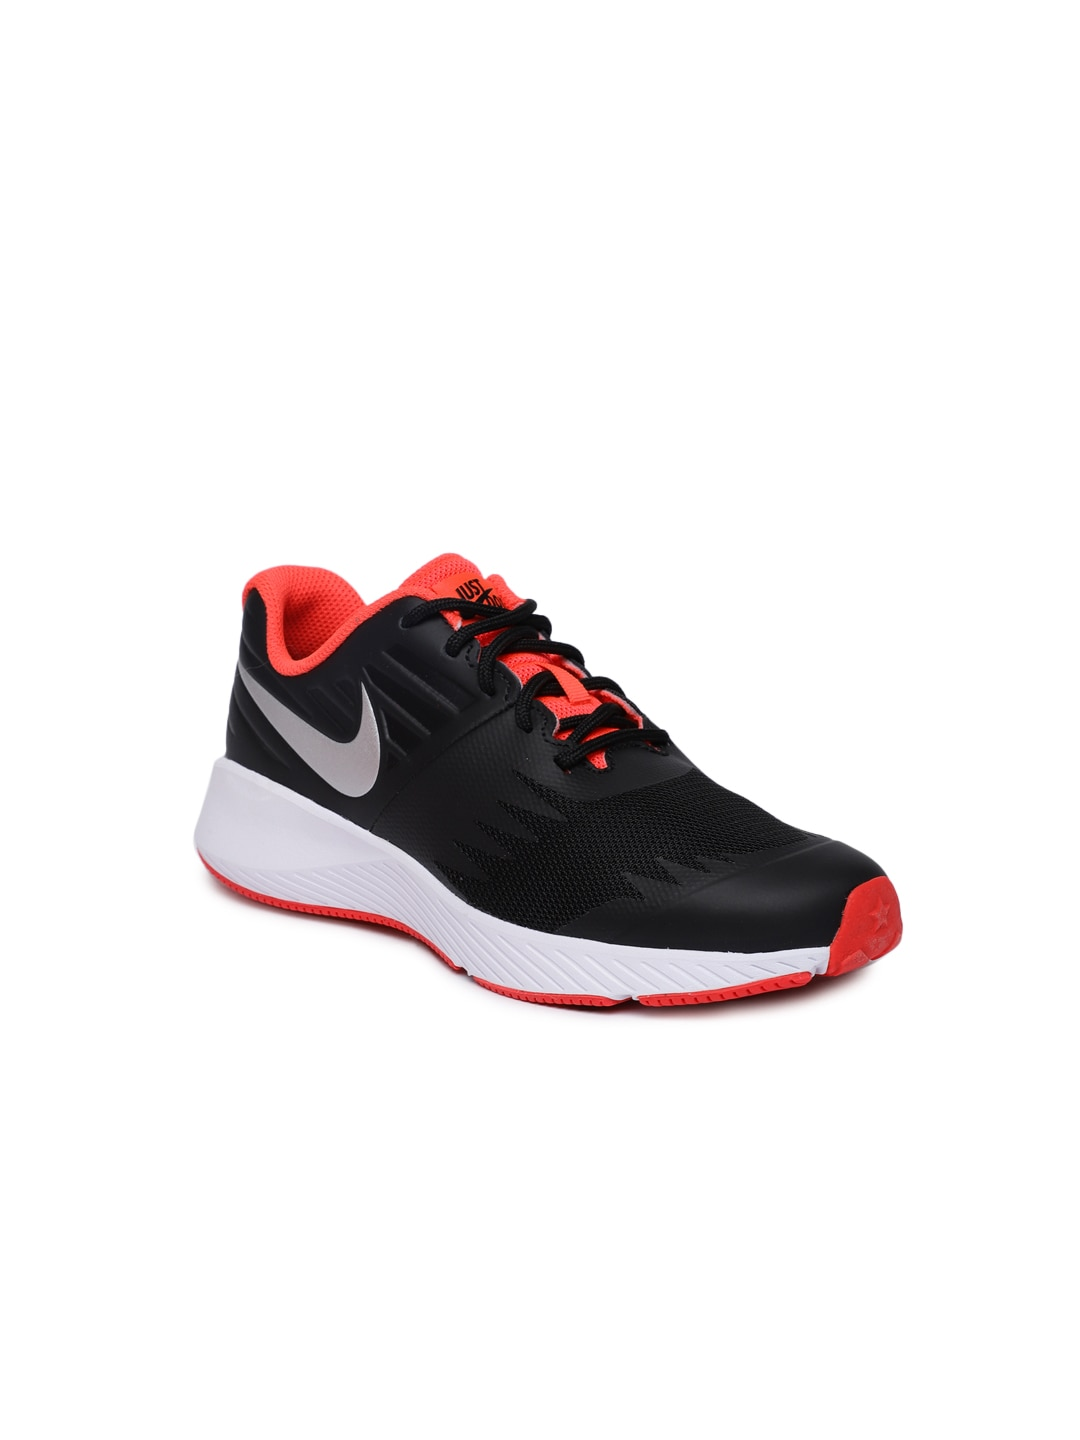 Boys Sports Shoes - Buy Sports Shoes For Kids Online in India 38179d7706ad